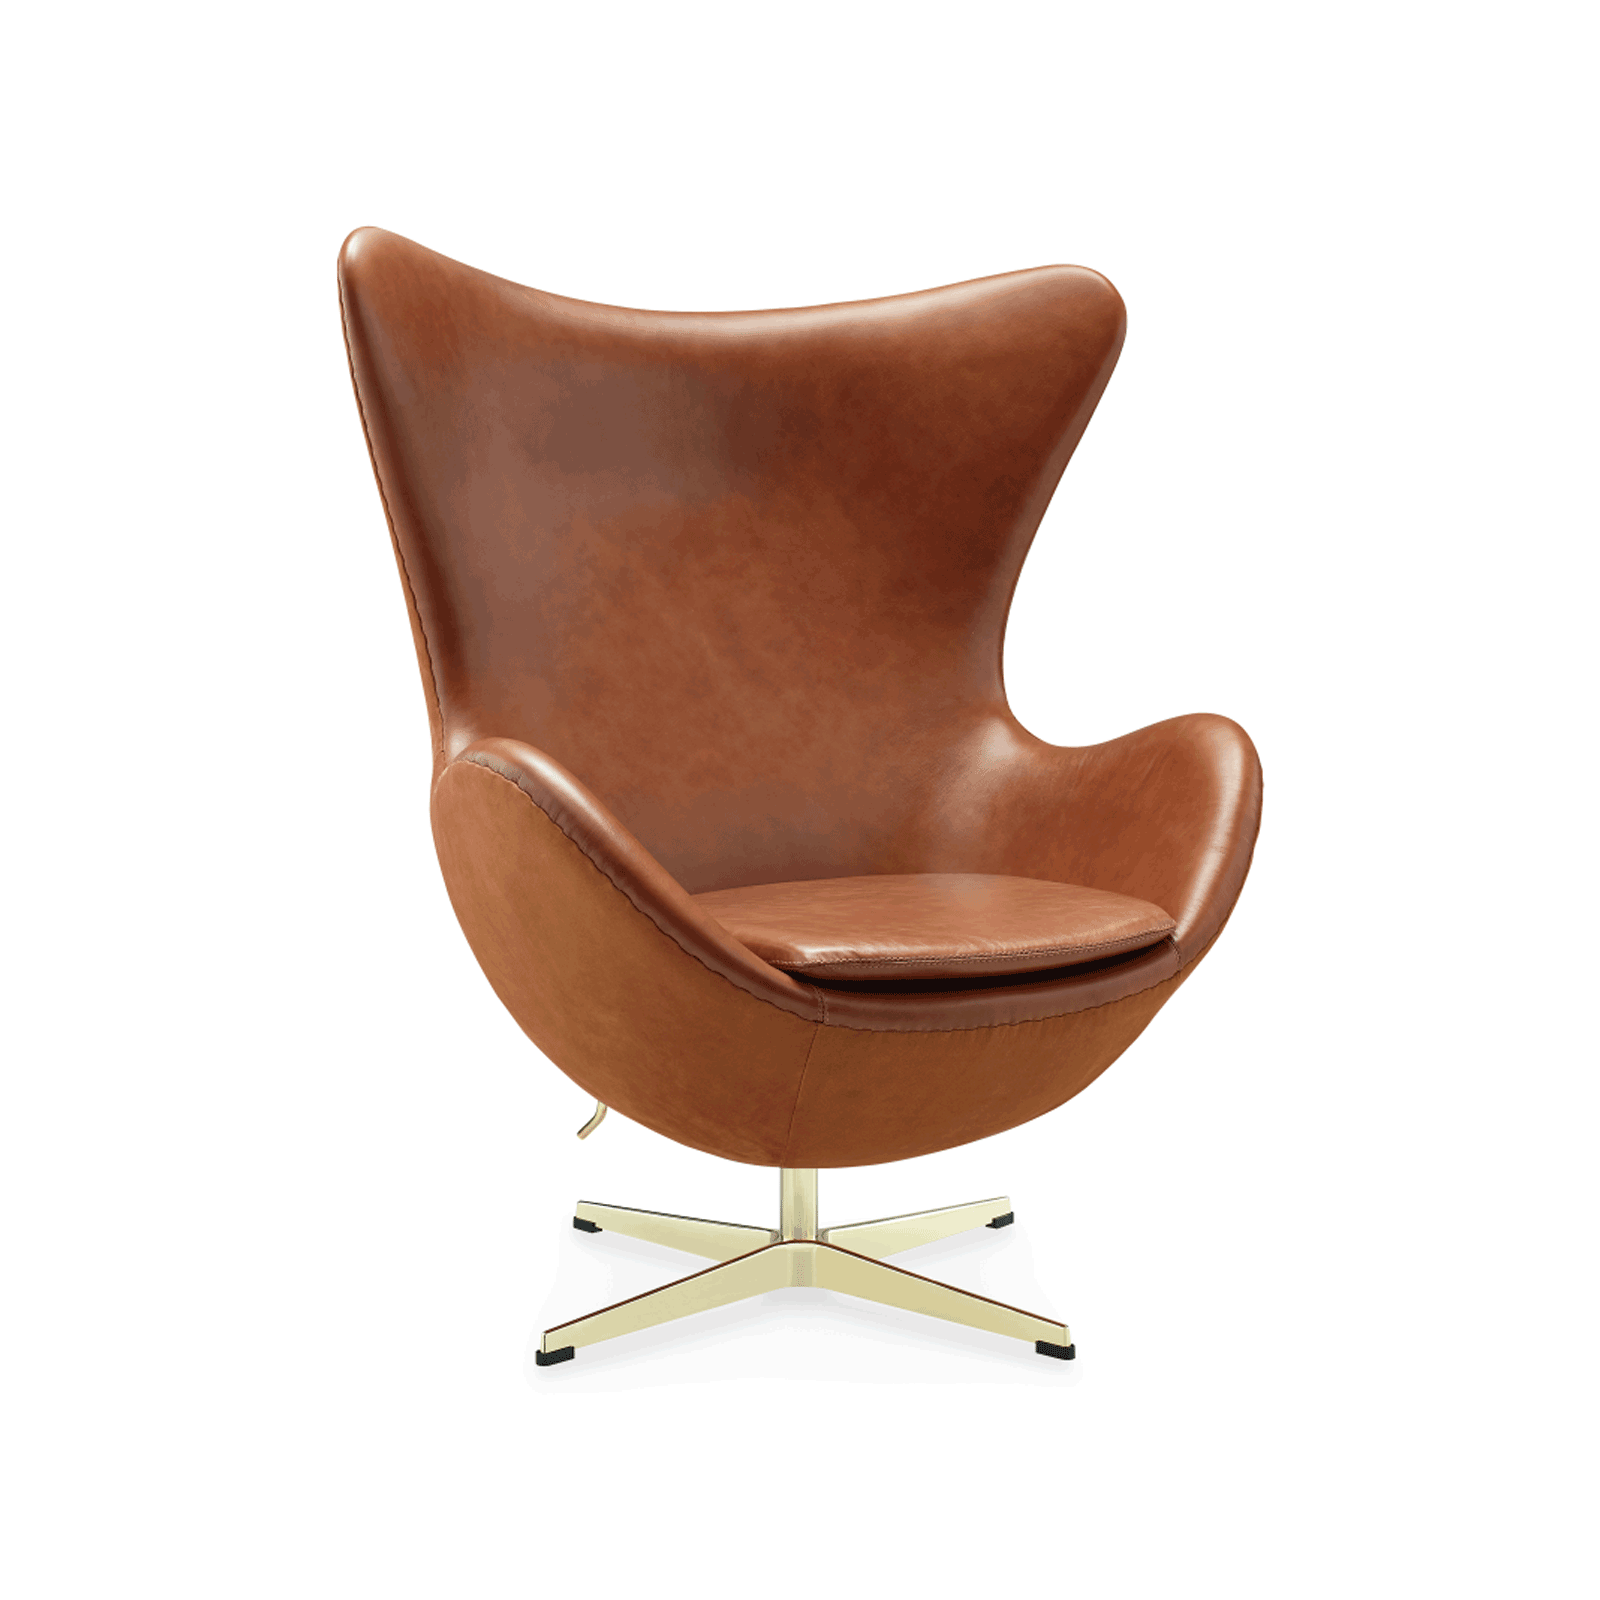 Redefine Your Style with Bestselling Chairs